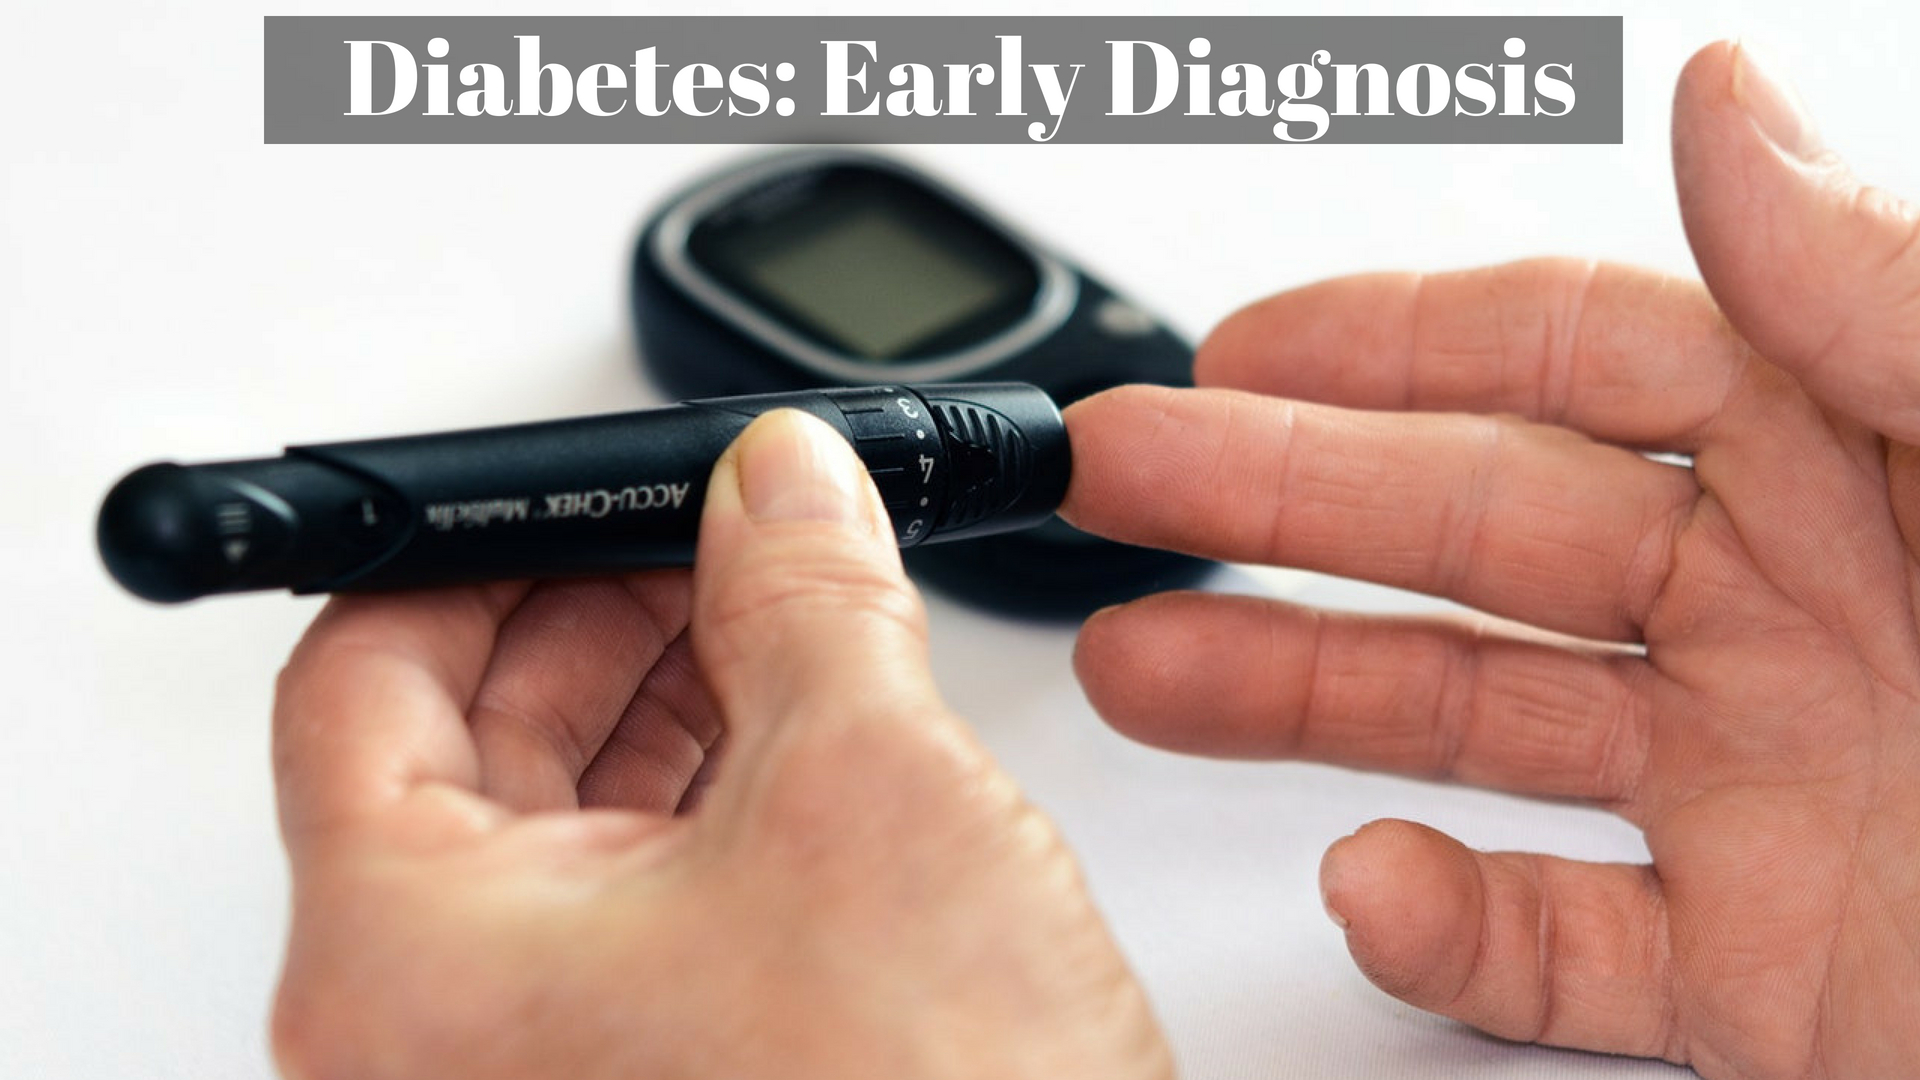 Diabetes_ Early Diagnosis